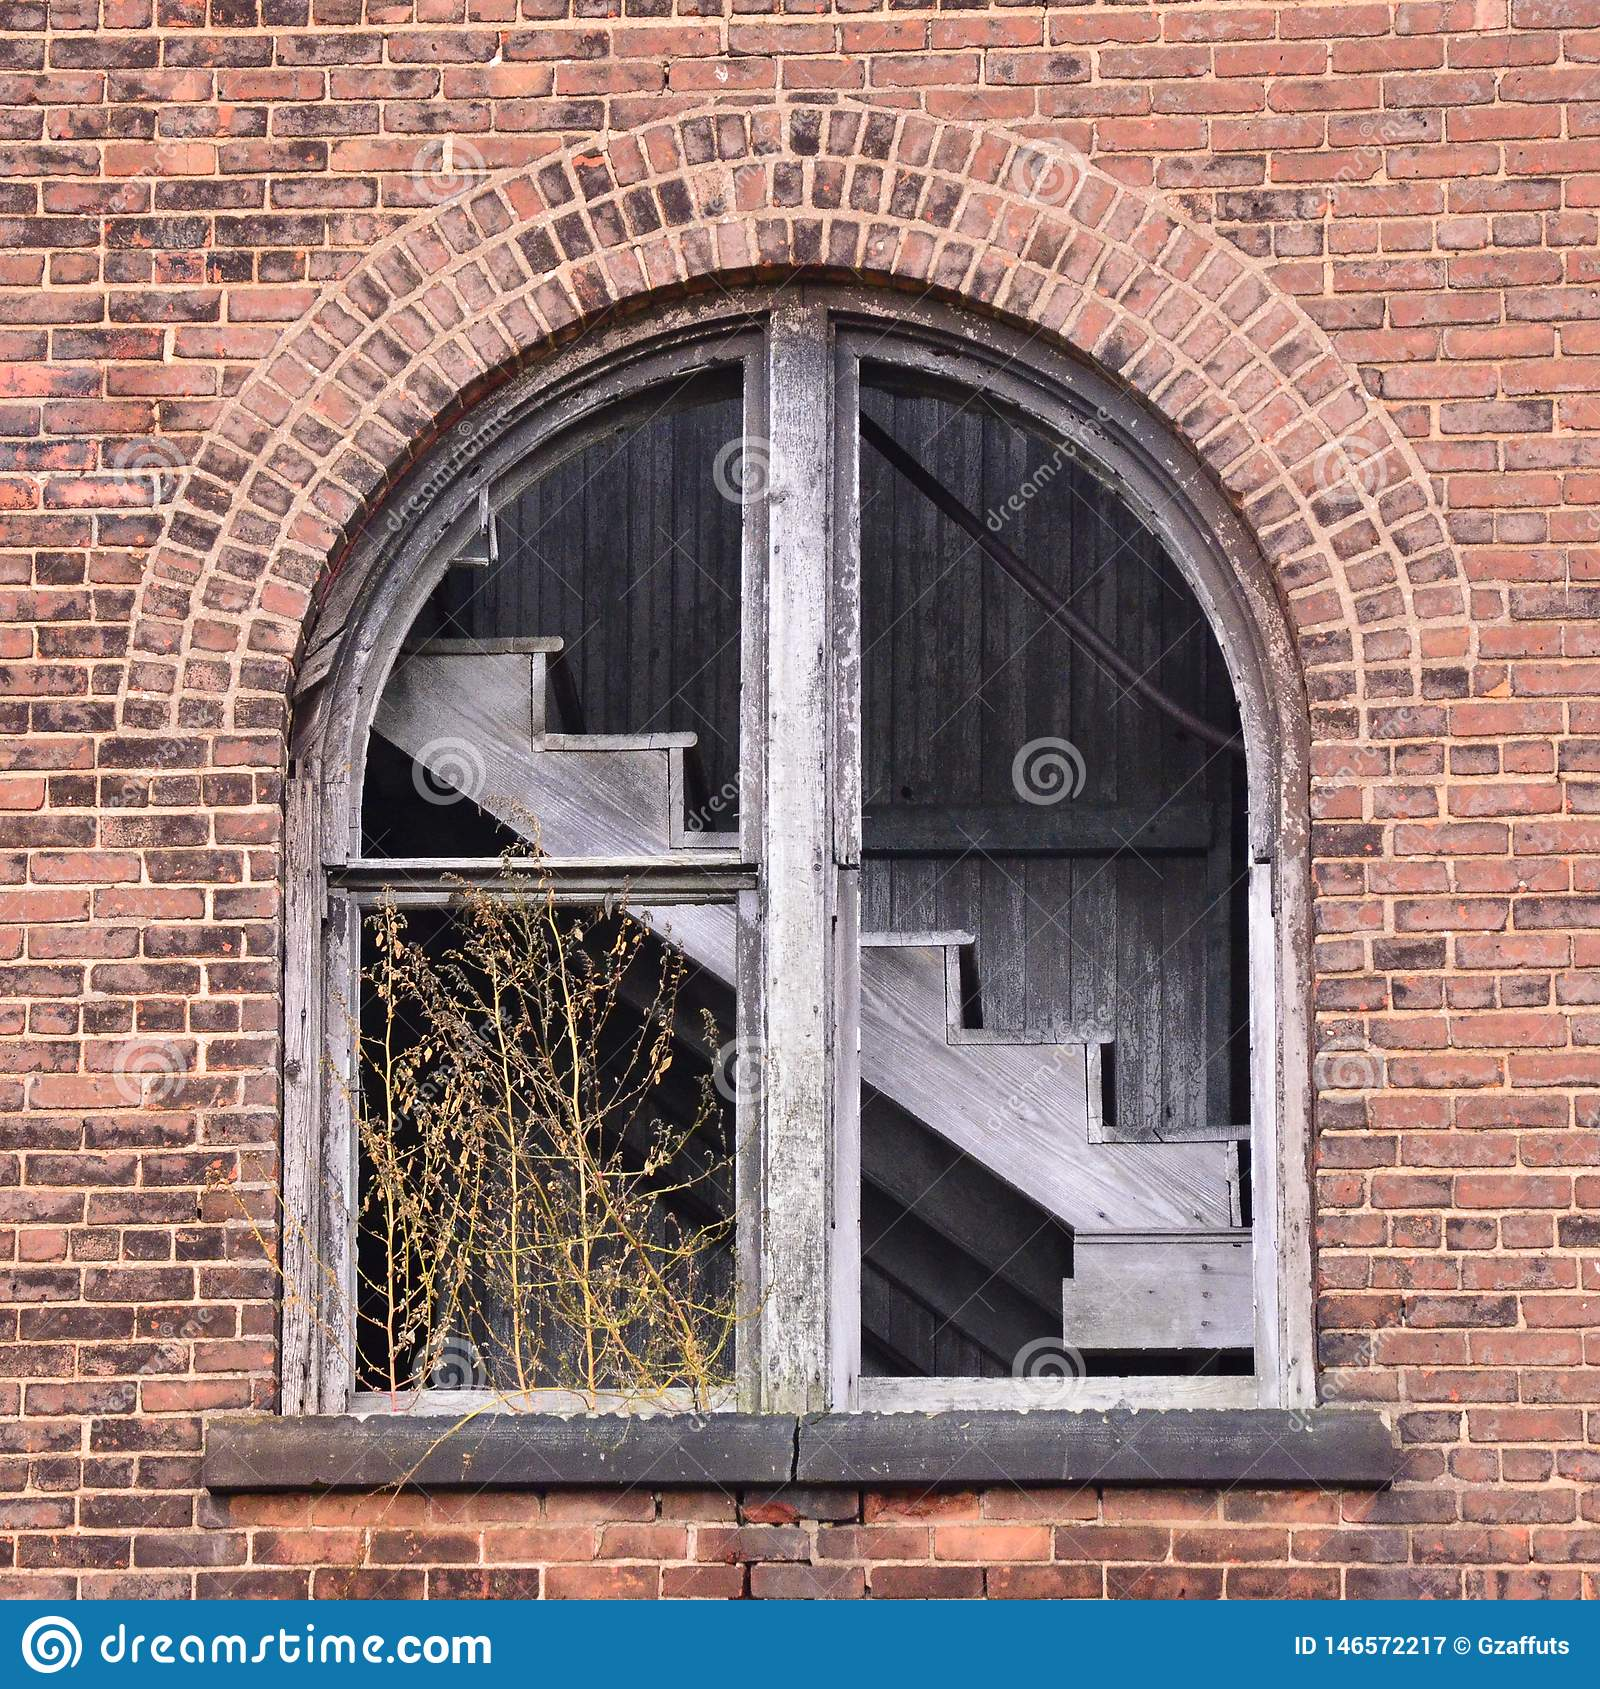 View of abandoned factory staircase